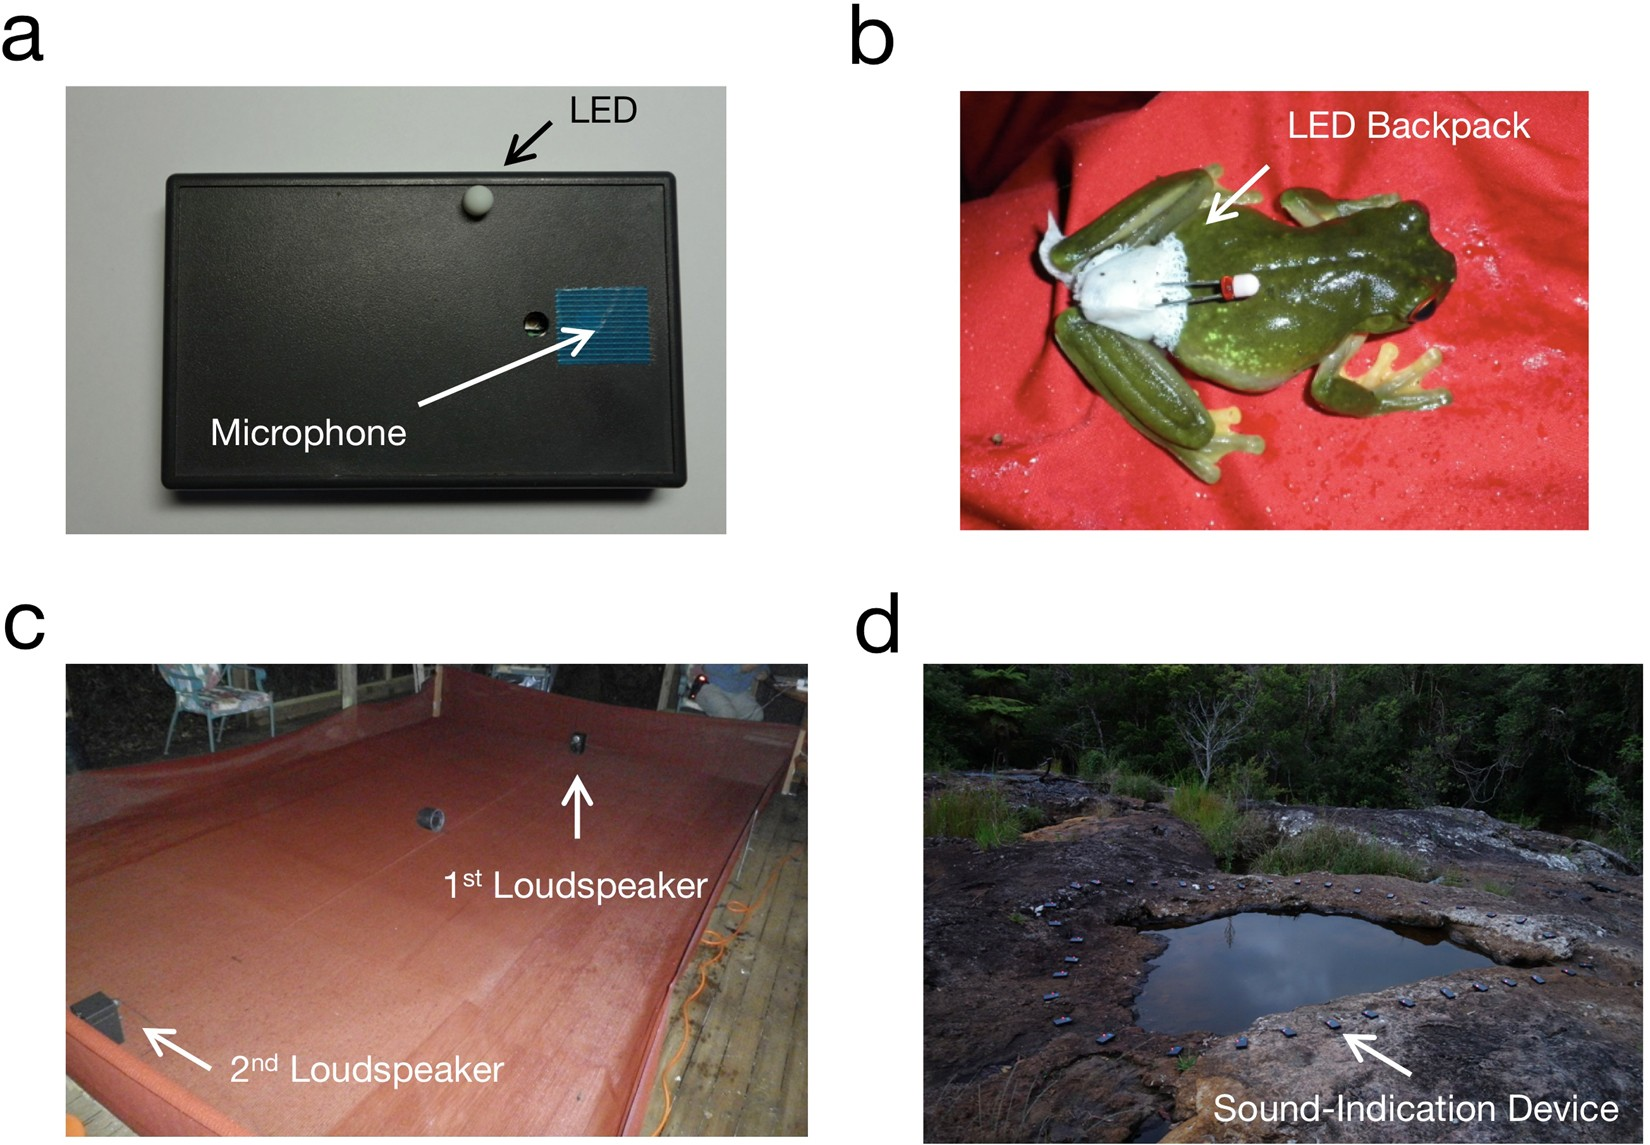 Visualizing Phonotactic Behavior Of Female Frogs In Darkness